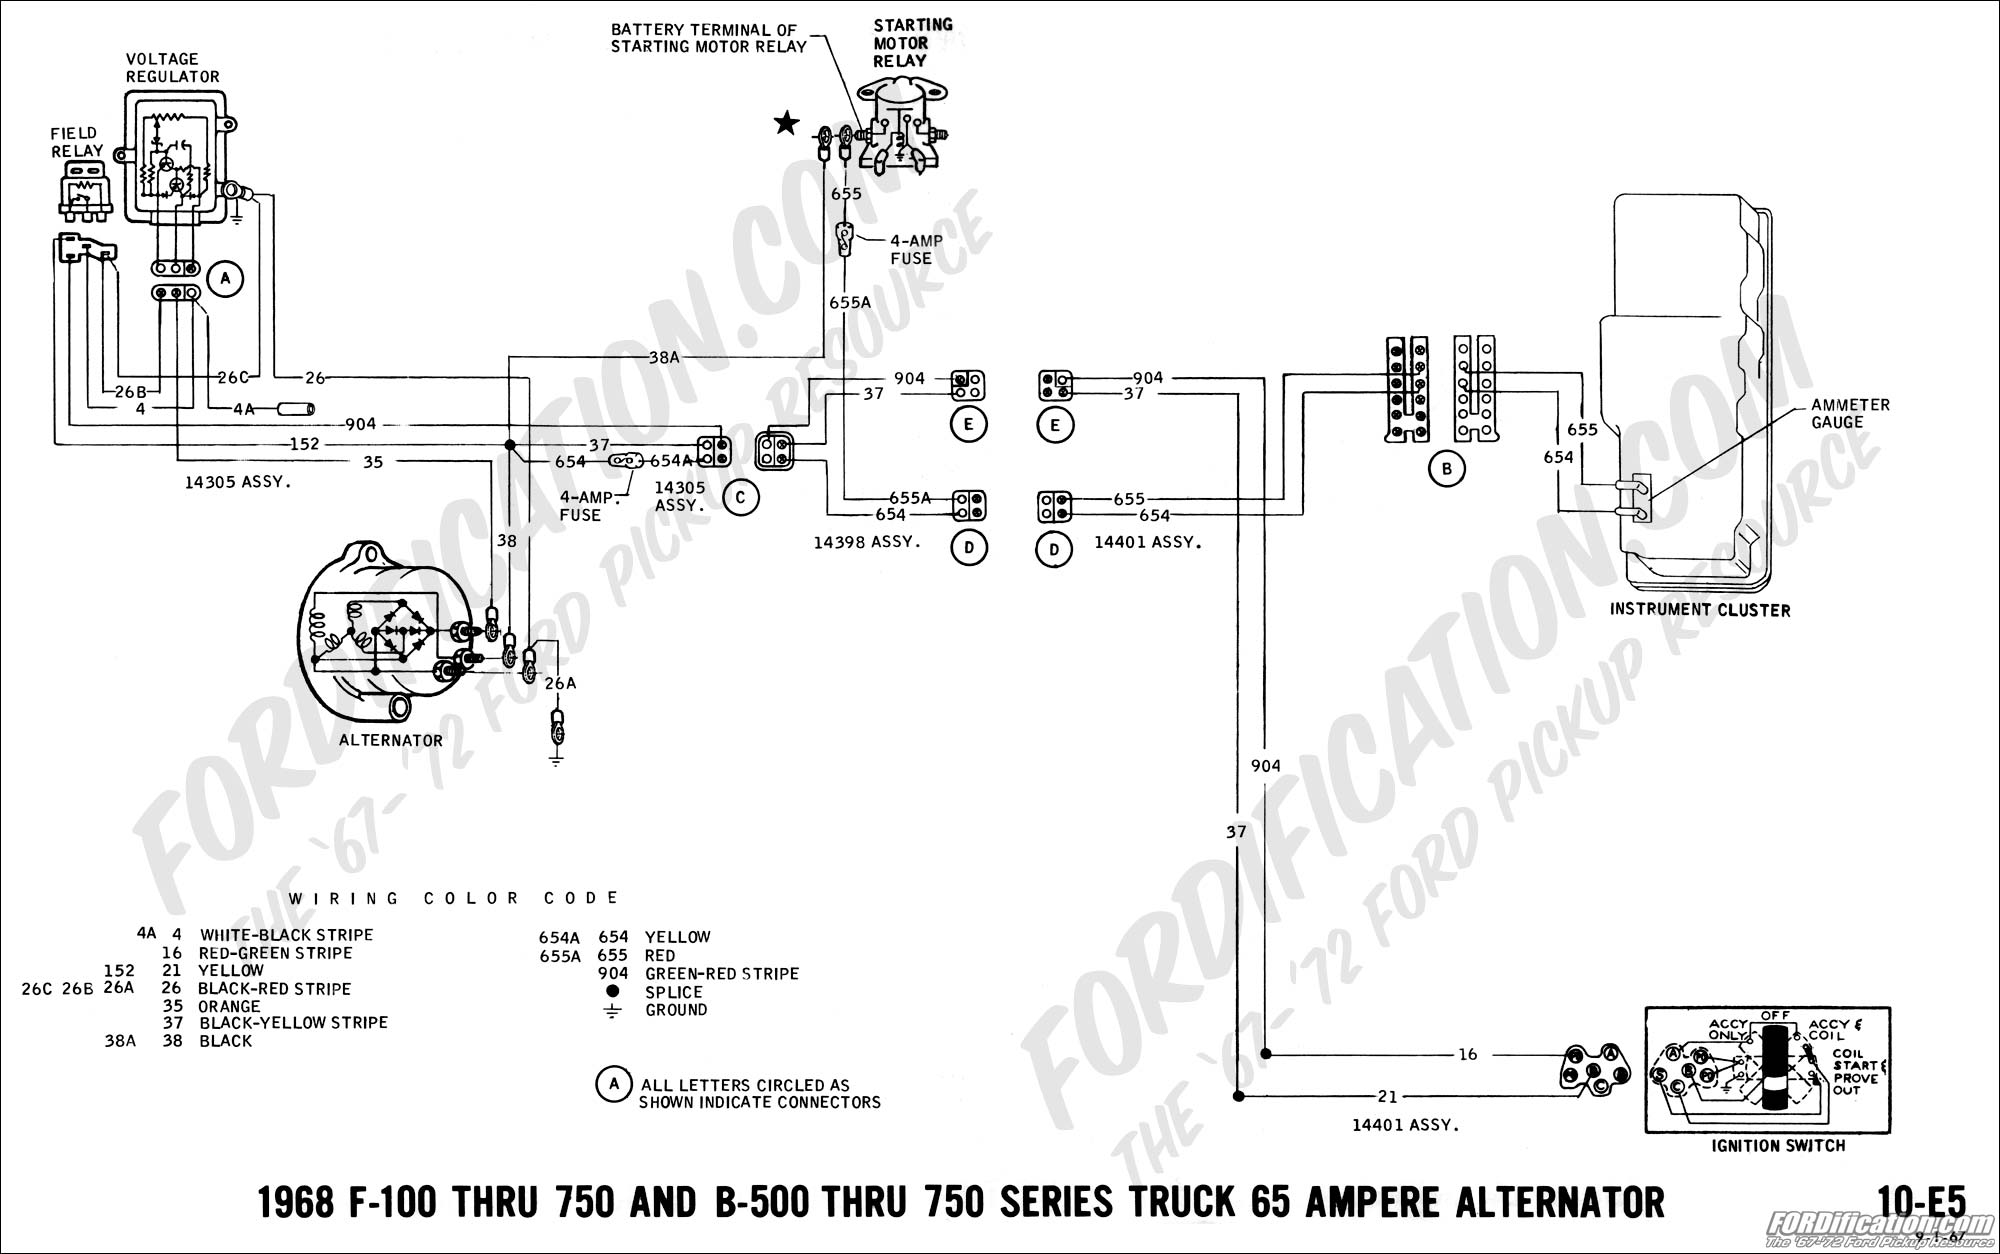 68 07 ford truck technical drawings and schematics section h wiring 1985 ford truck wiring diagram at eliteediting.co